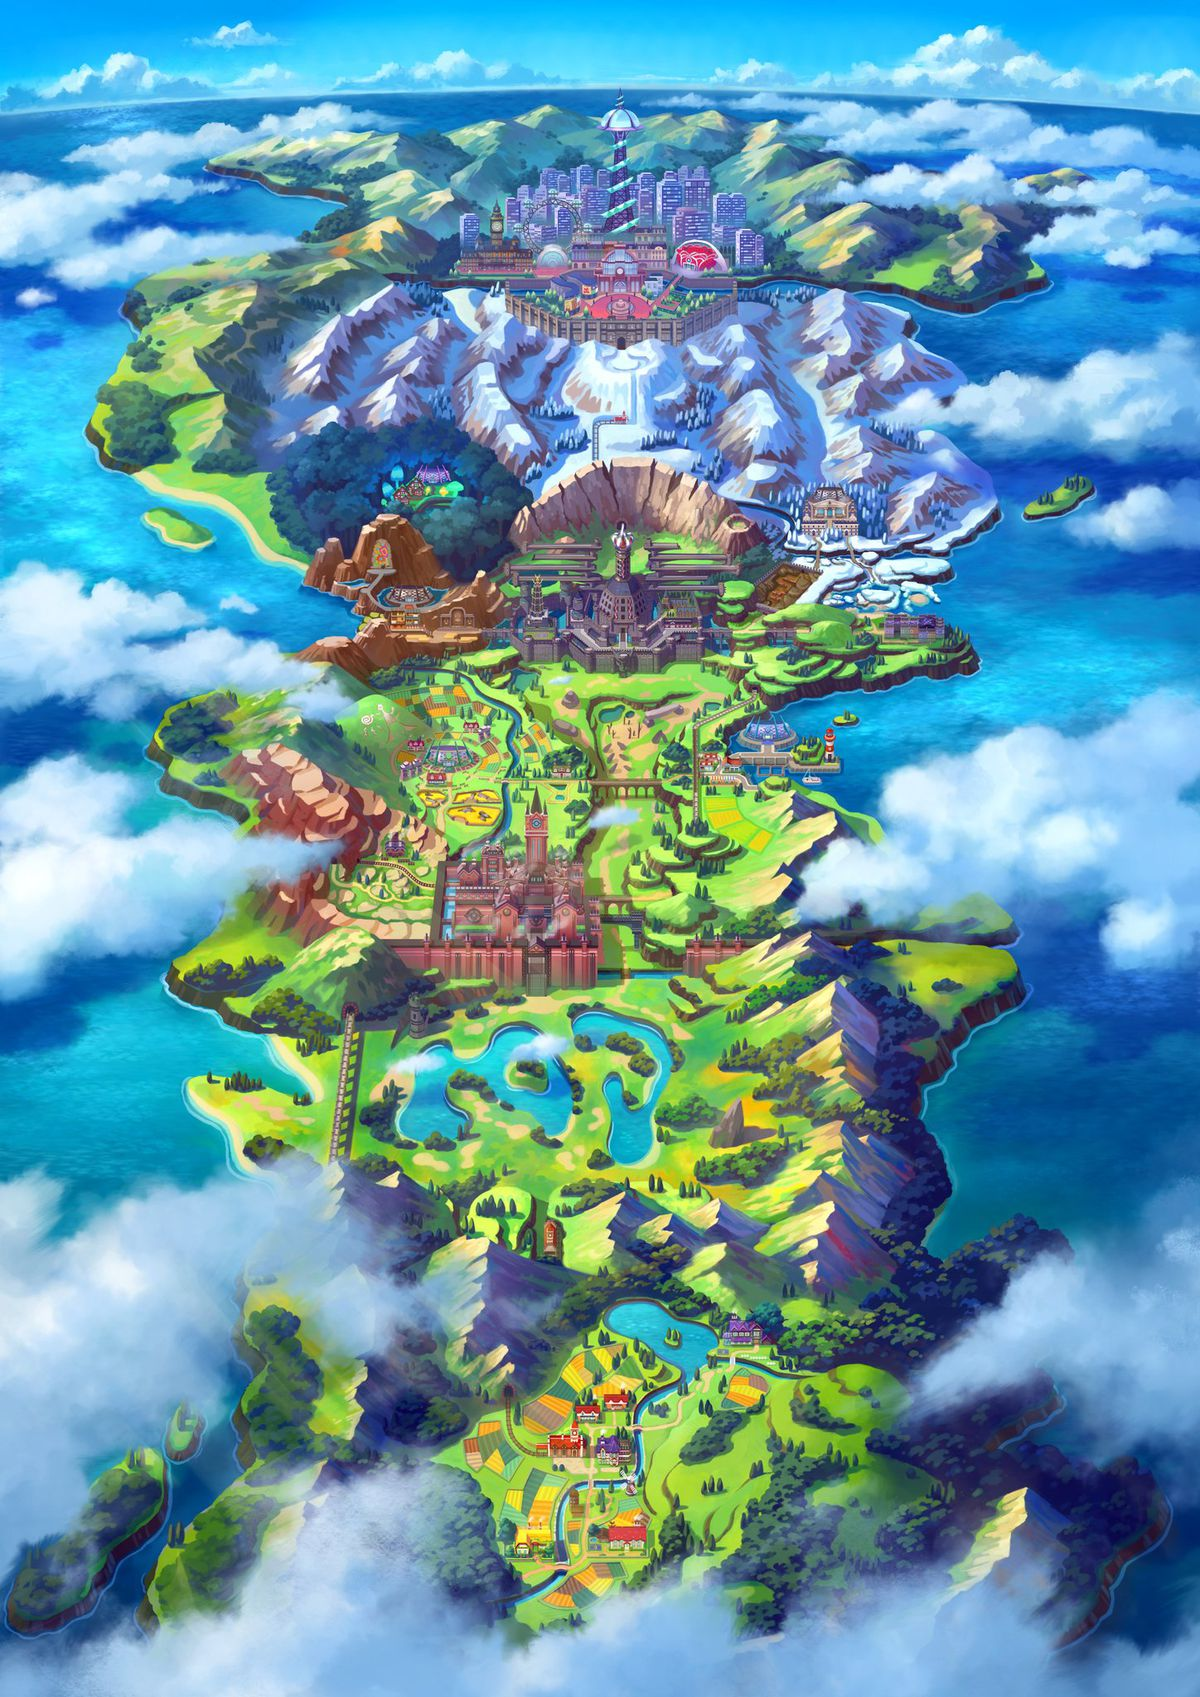 Is Pokémon Sword and Shield's Galar region based on the UK? - Polygon